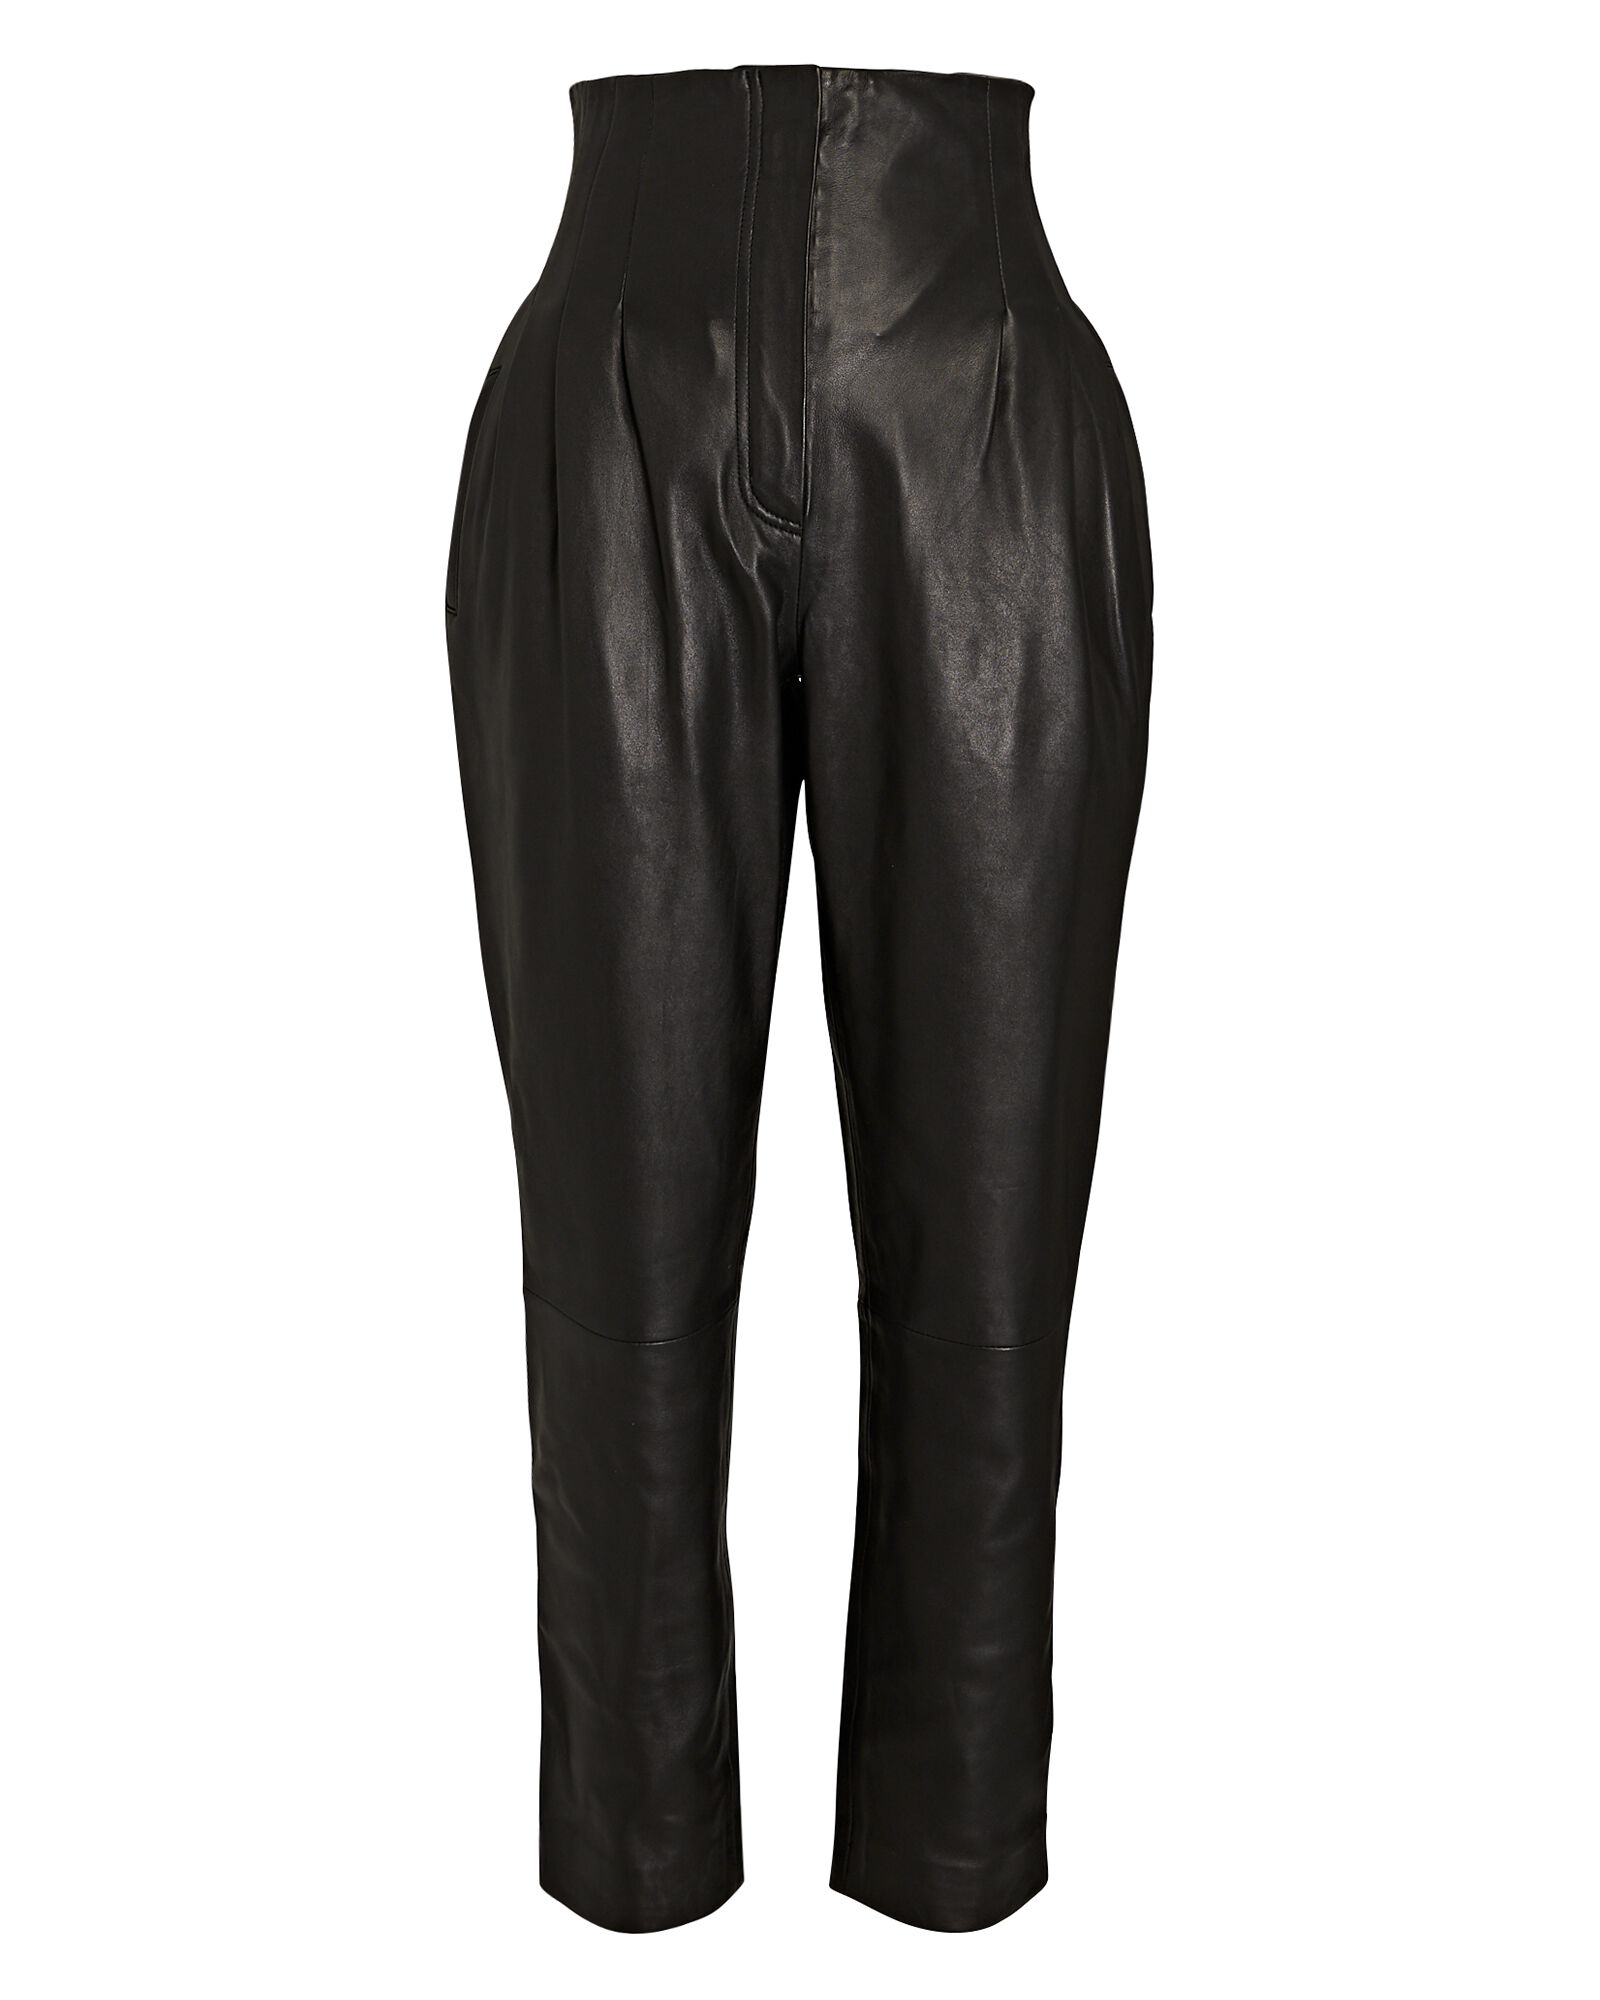 Tapered High-Waist Leather Pants, BLACK, hi-res